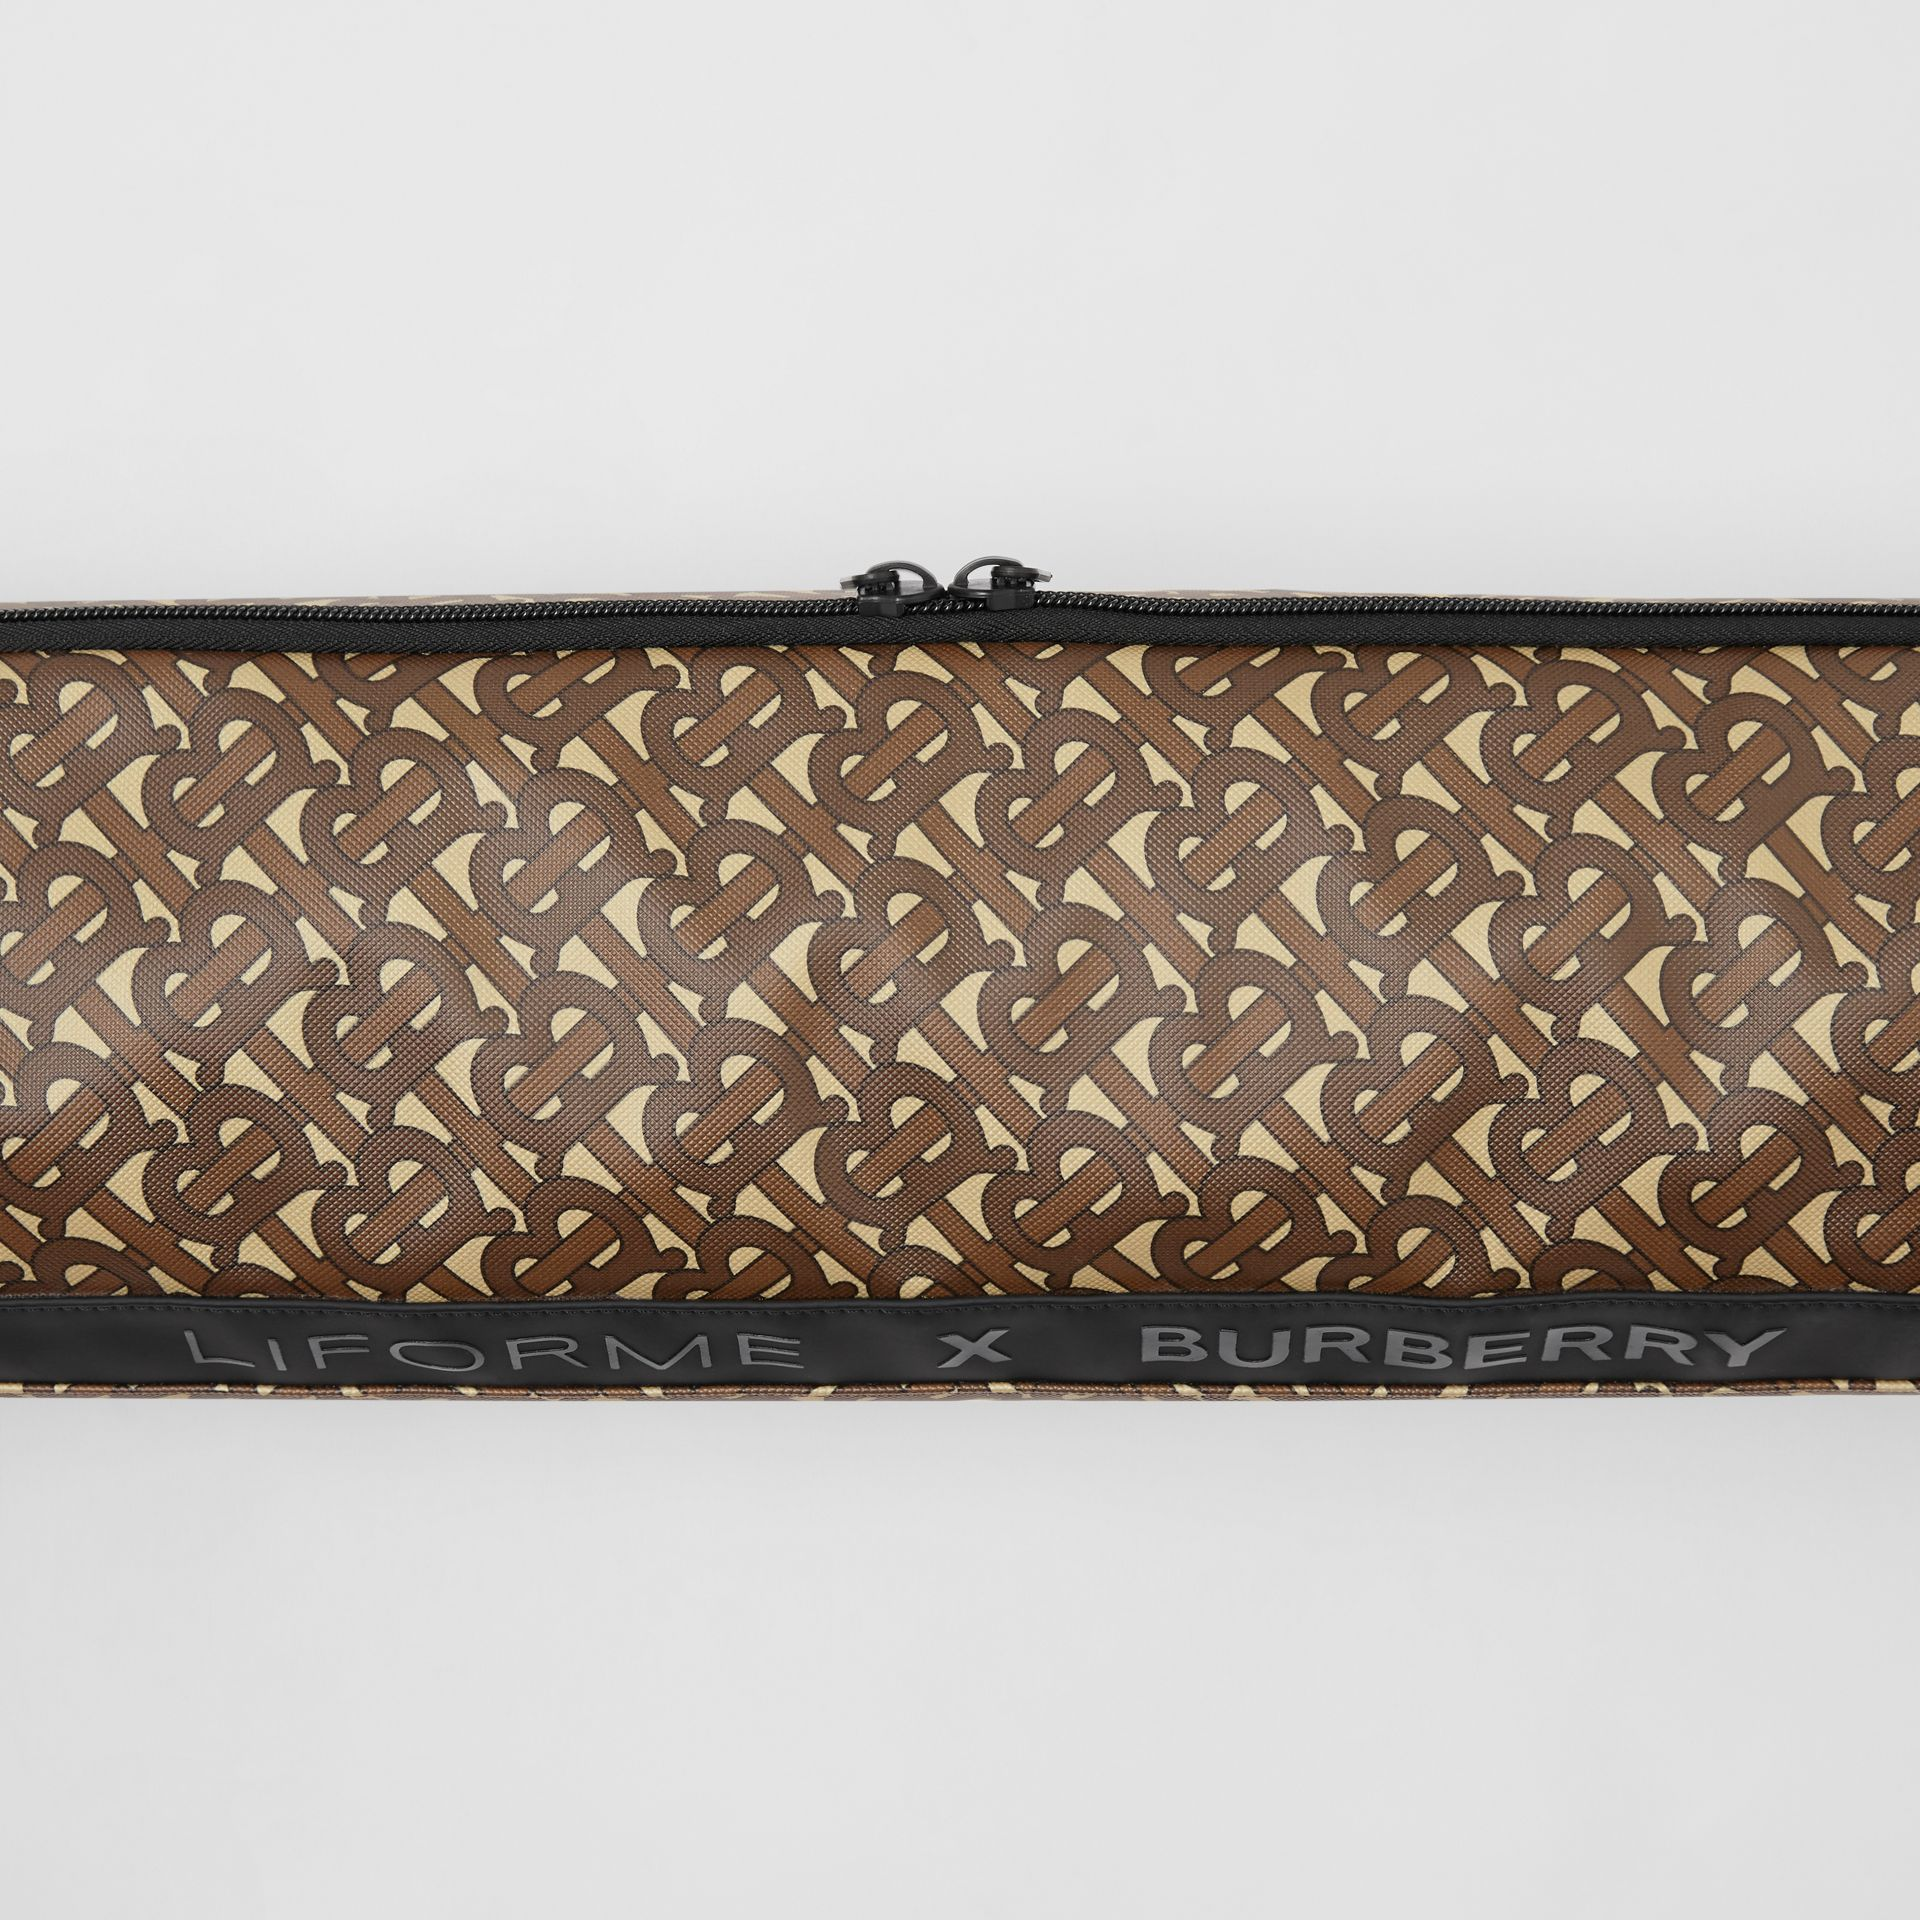 Liforme x Burberry Monogram Motif Yoga Mat in Bridle Brown | Burberry Hong Kong S.A.R - gallery image 4